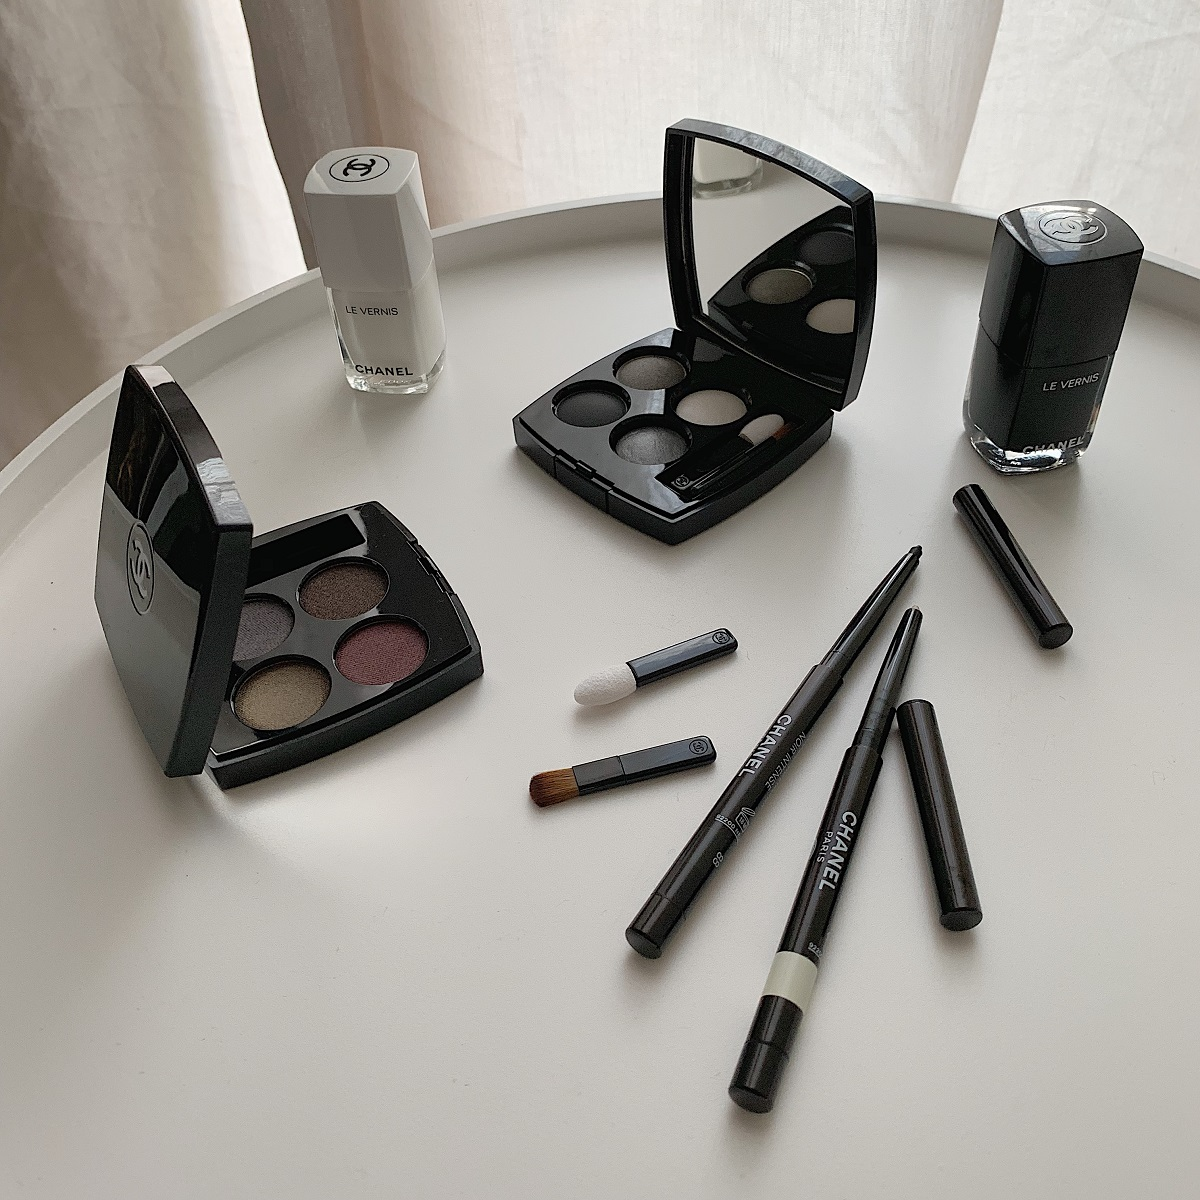 chanel products Noir et Blanc Chanel (7)